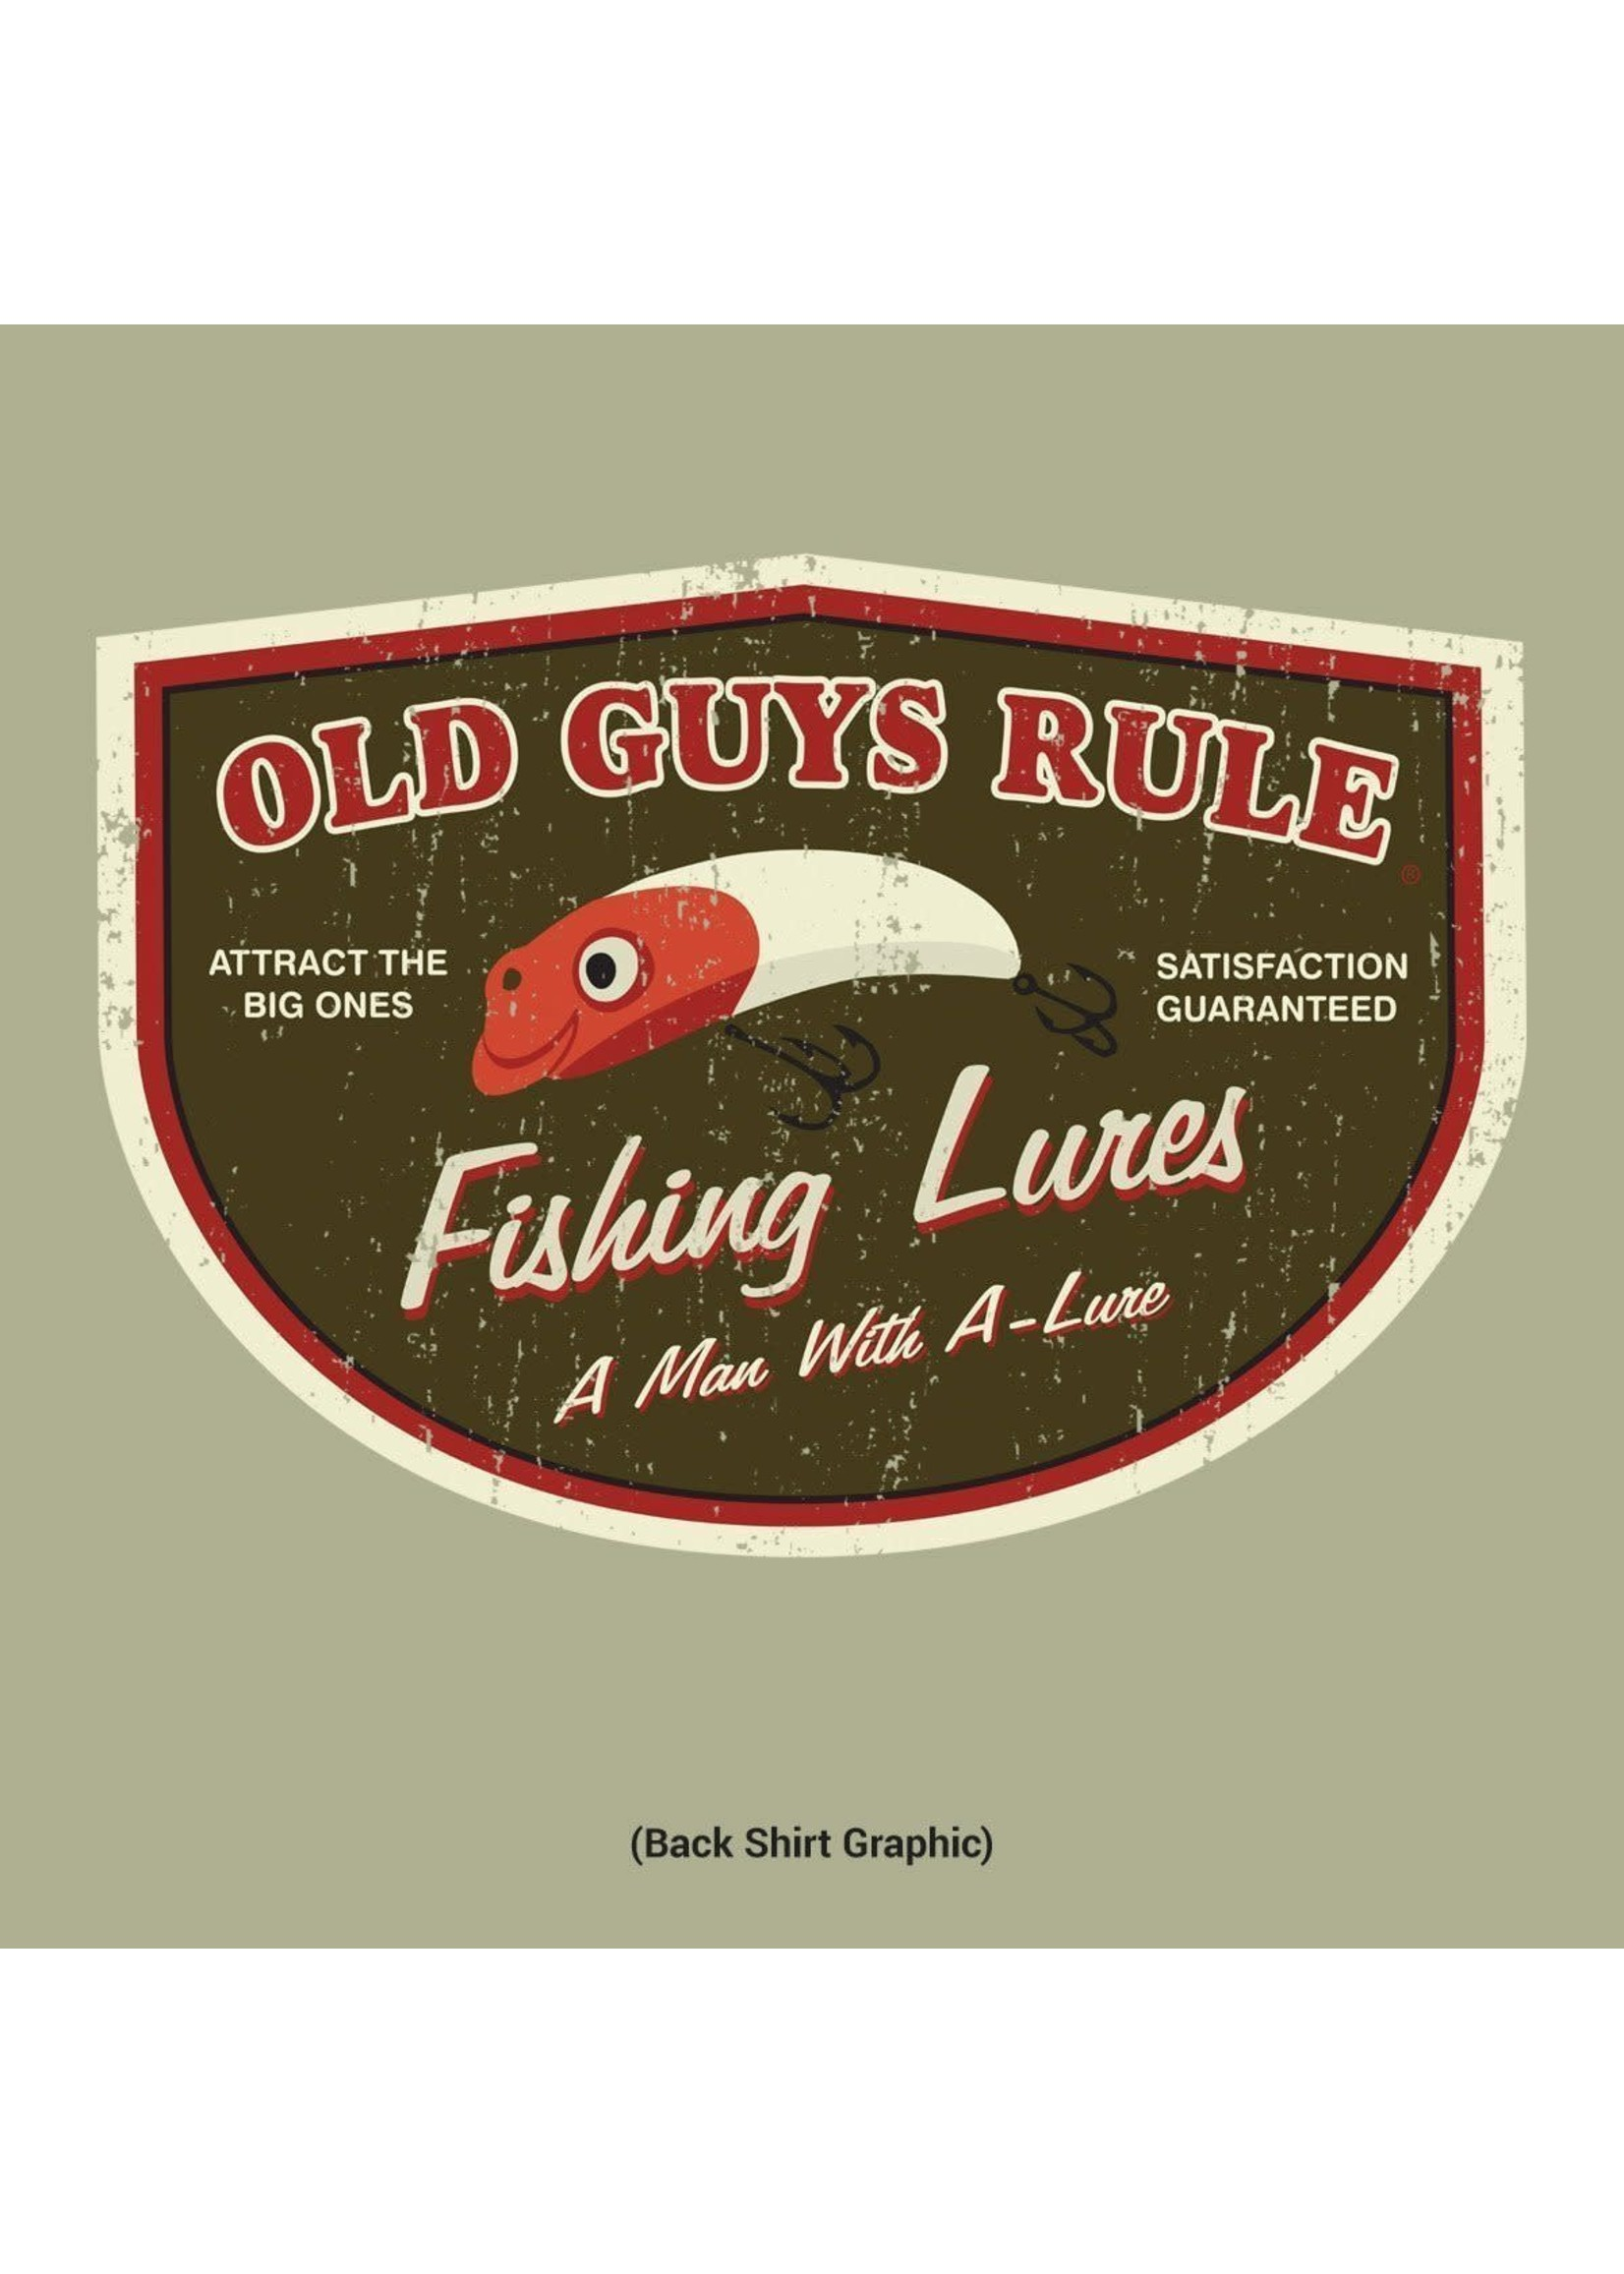 Old Guys Rule Old Guys Rule T-Shirt - Man with A-Lure M